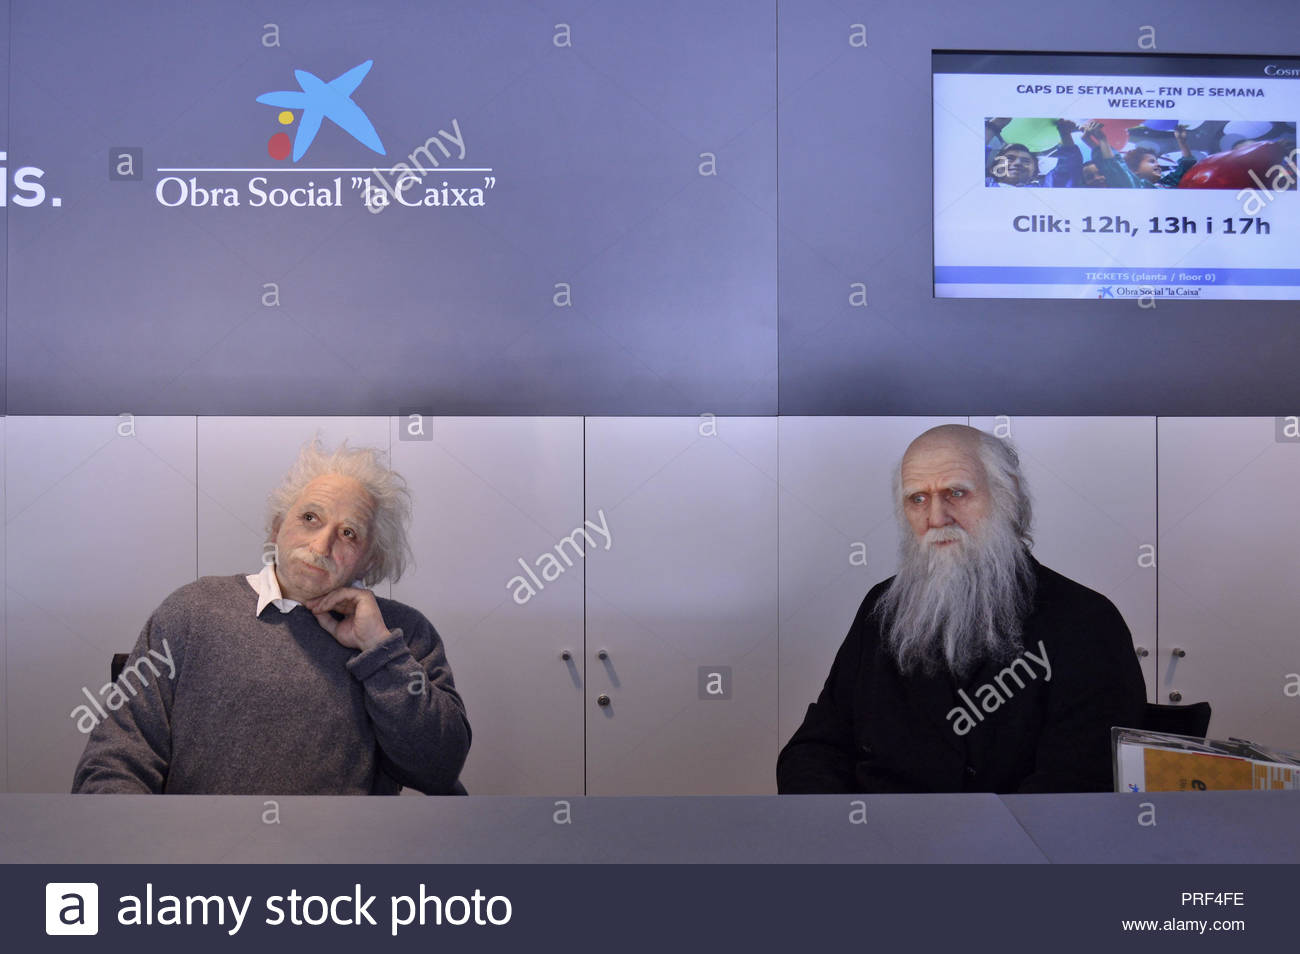 Wax figures of Albert Einstein and Charles Darwin, famous scientists, installed at reception desk in CosmoCaixa science museum, Barcelona Spain. - Stock Image